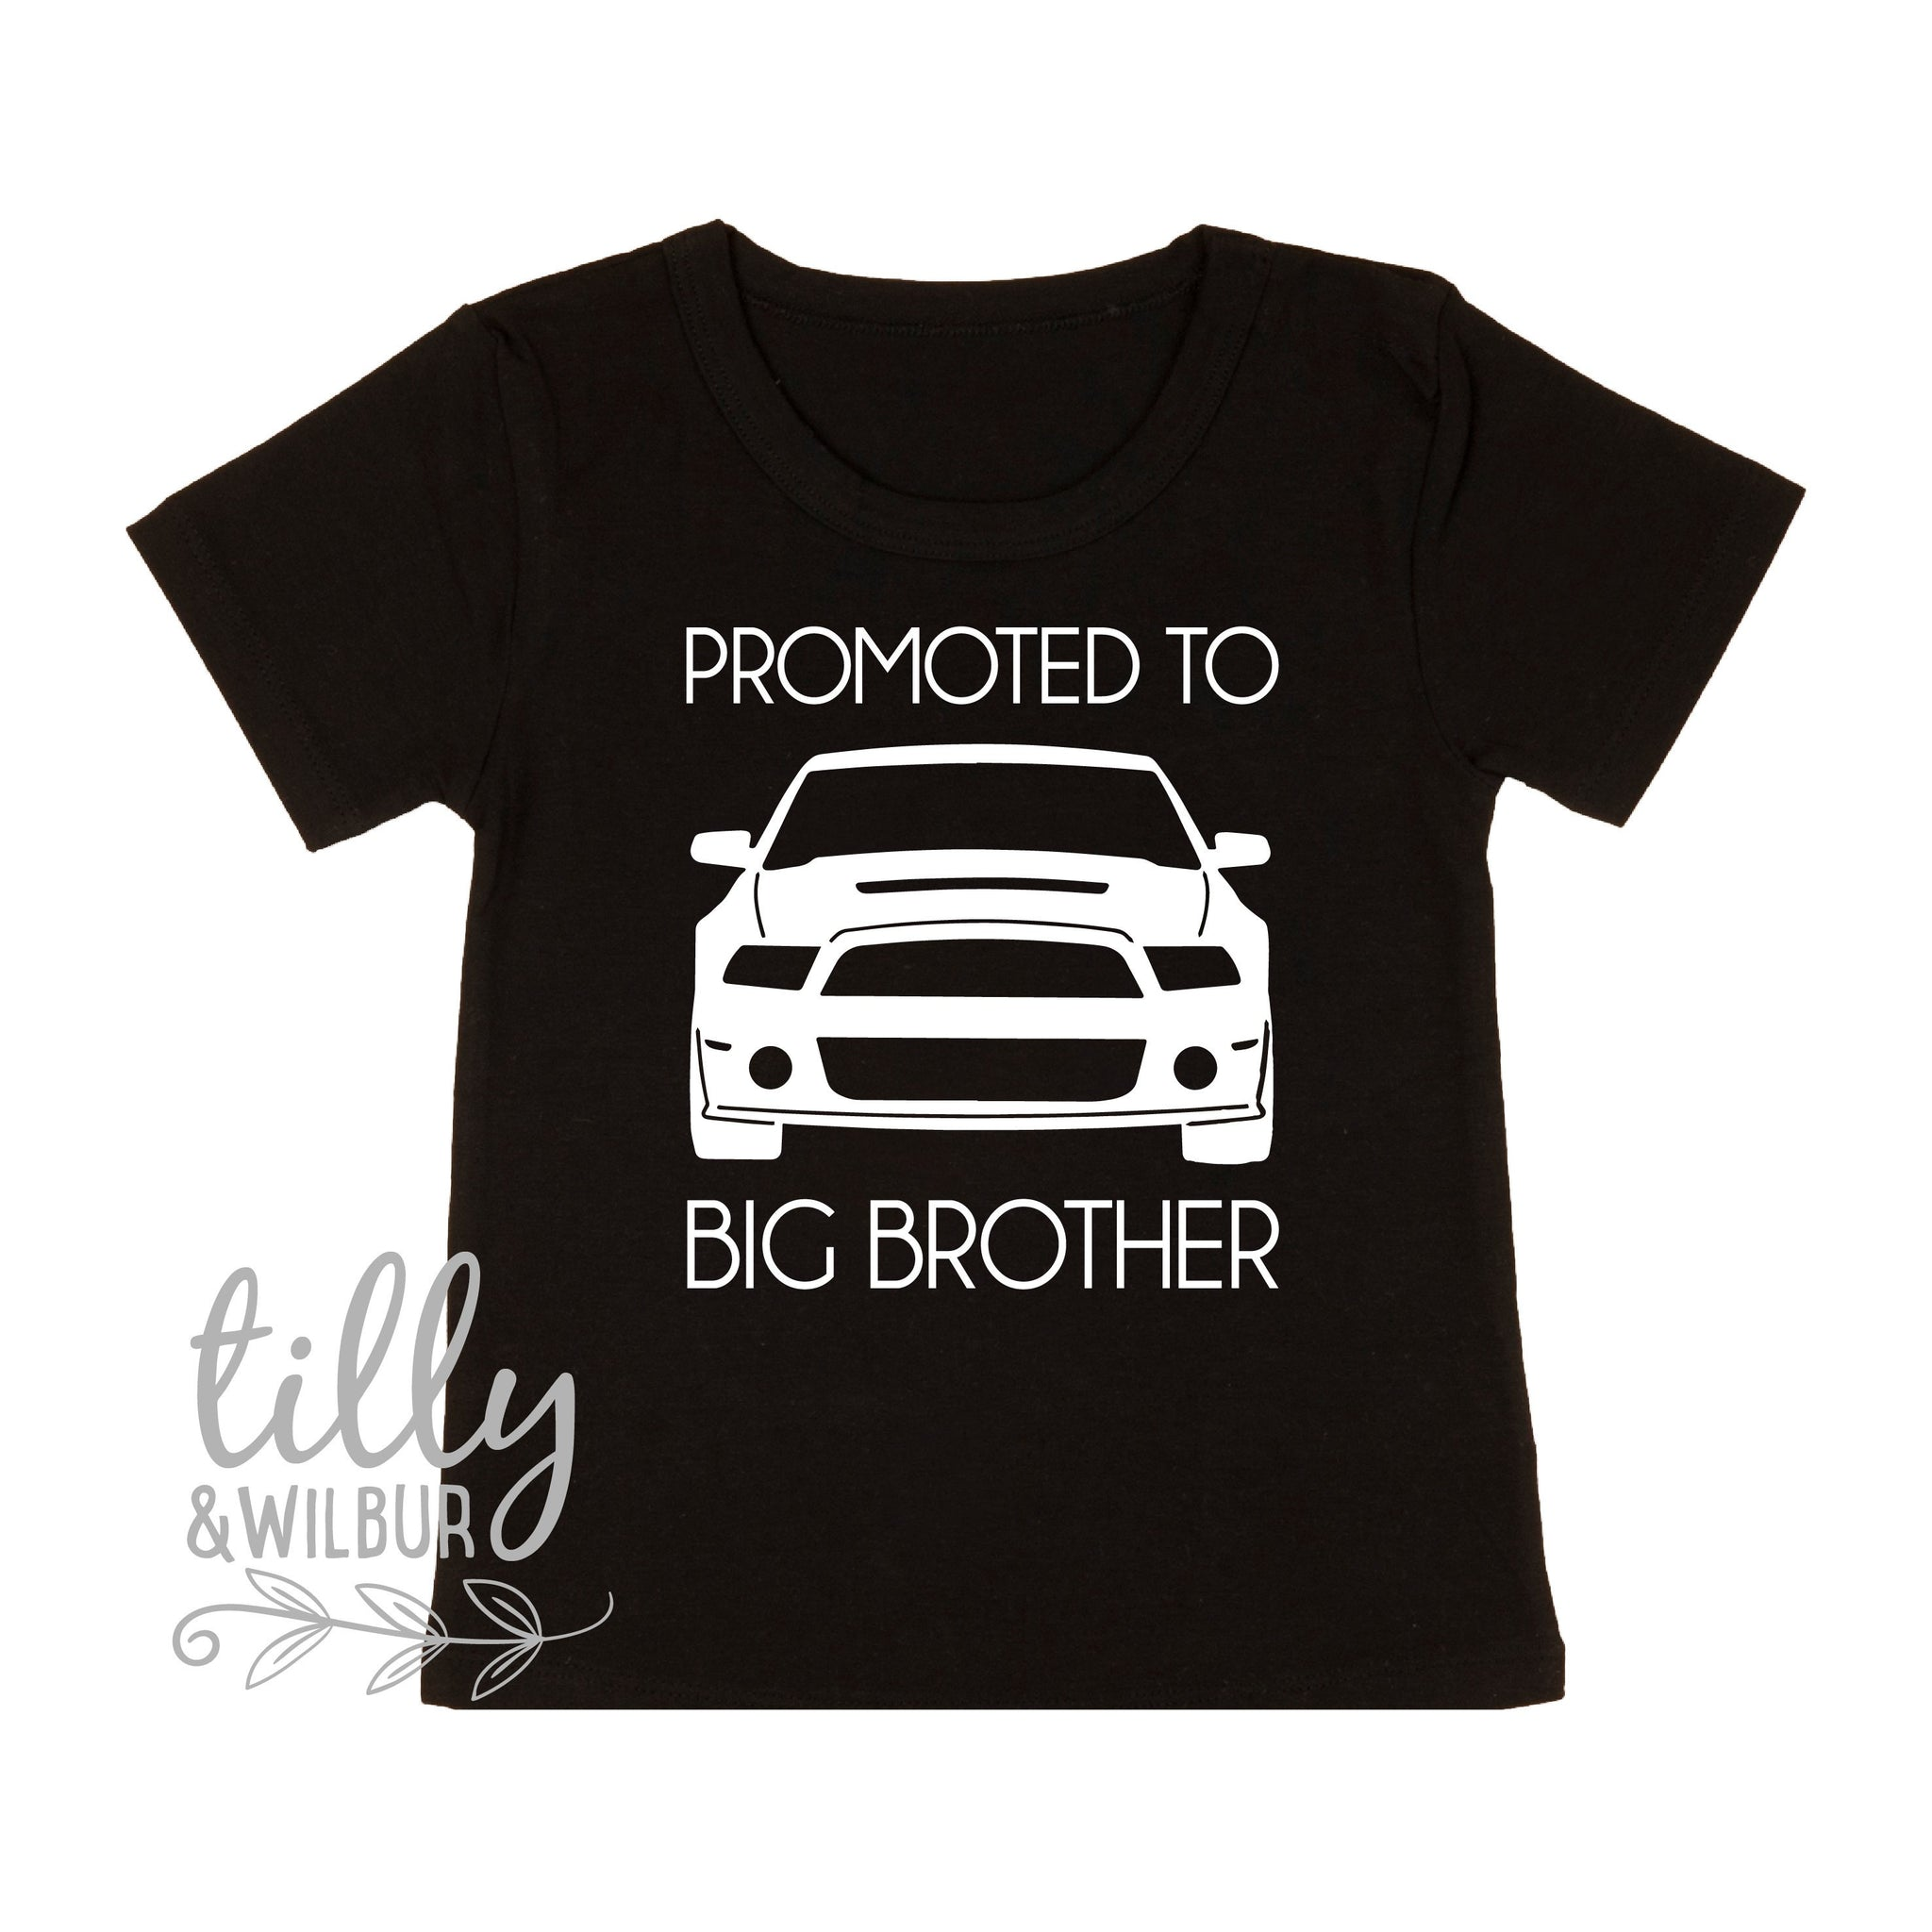 cd029633 Promoted To Big Brother T-Shirt, Car Brother Shirt, Ford T-Shirt